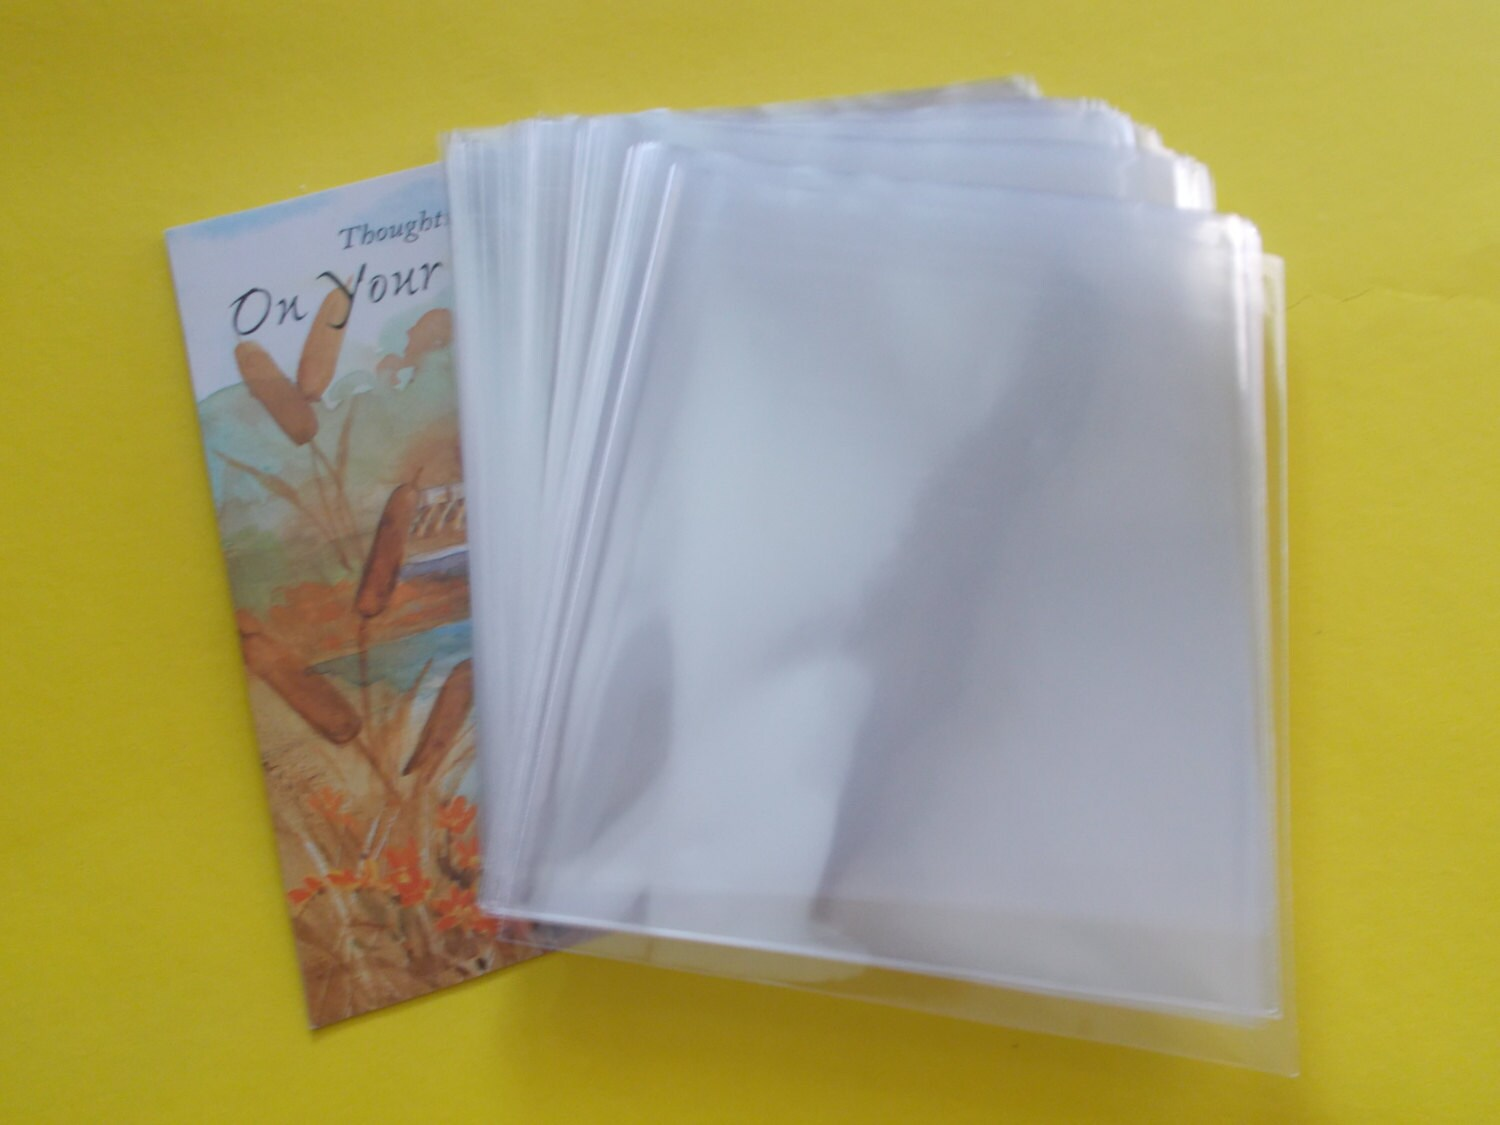 No flap cello bags fits a2 card envelope 4 58 x 5 zoom kristyandbryce Gallery